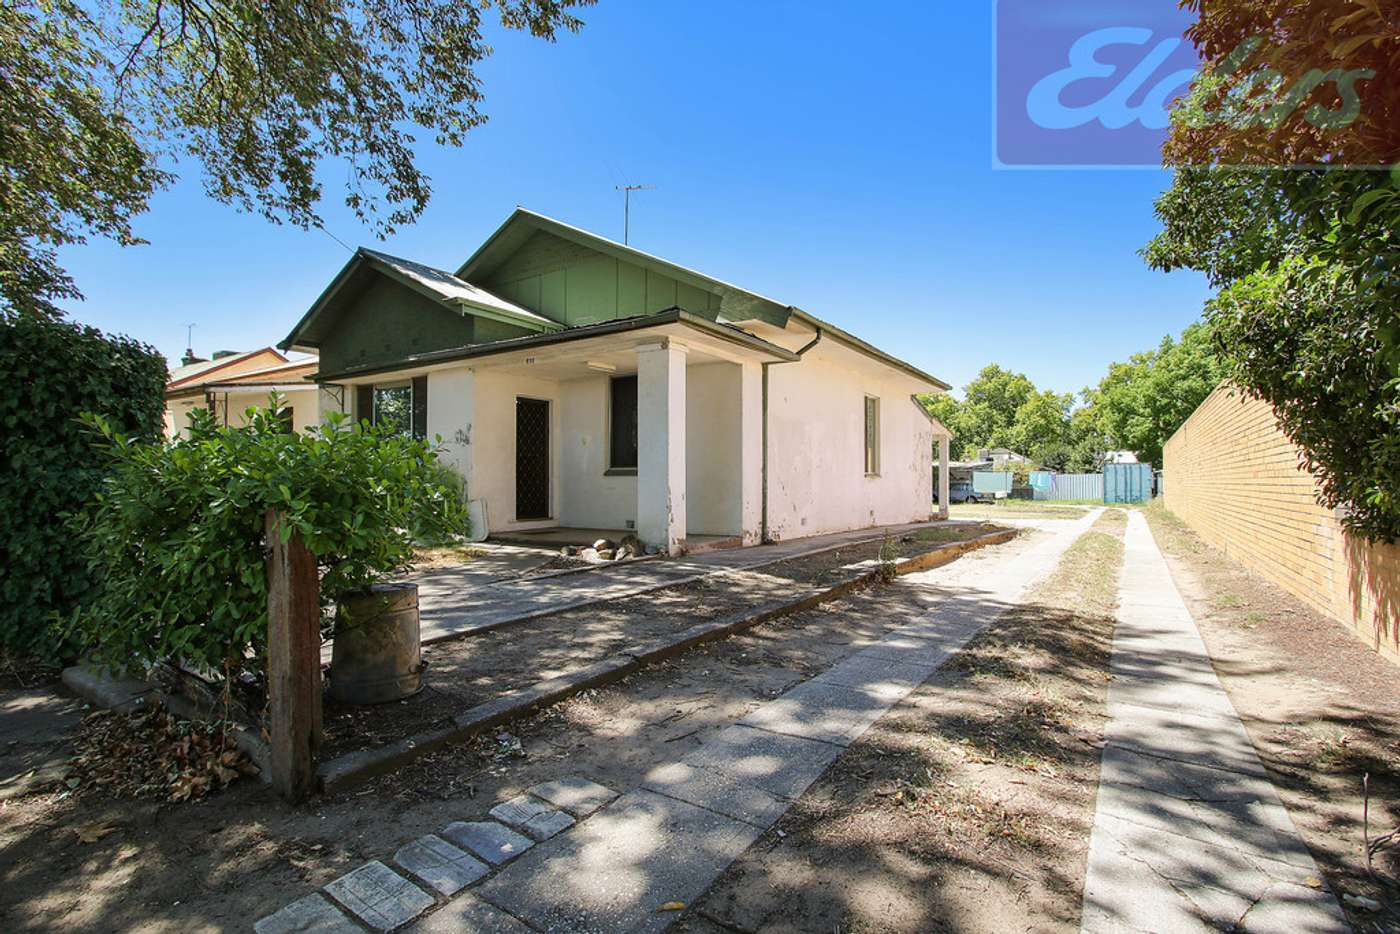 616 David Street, Albury, NSW 2640 For Sale - Homely